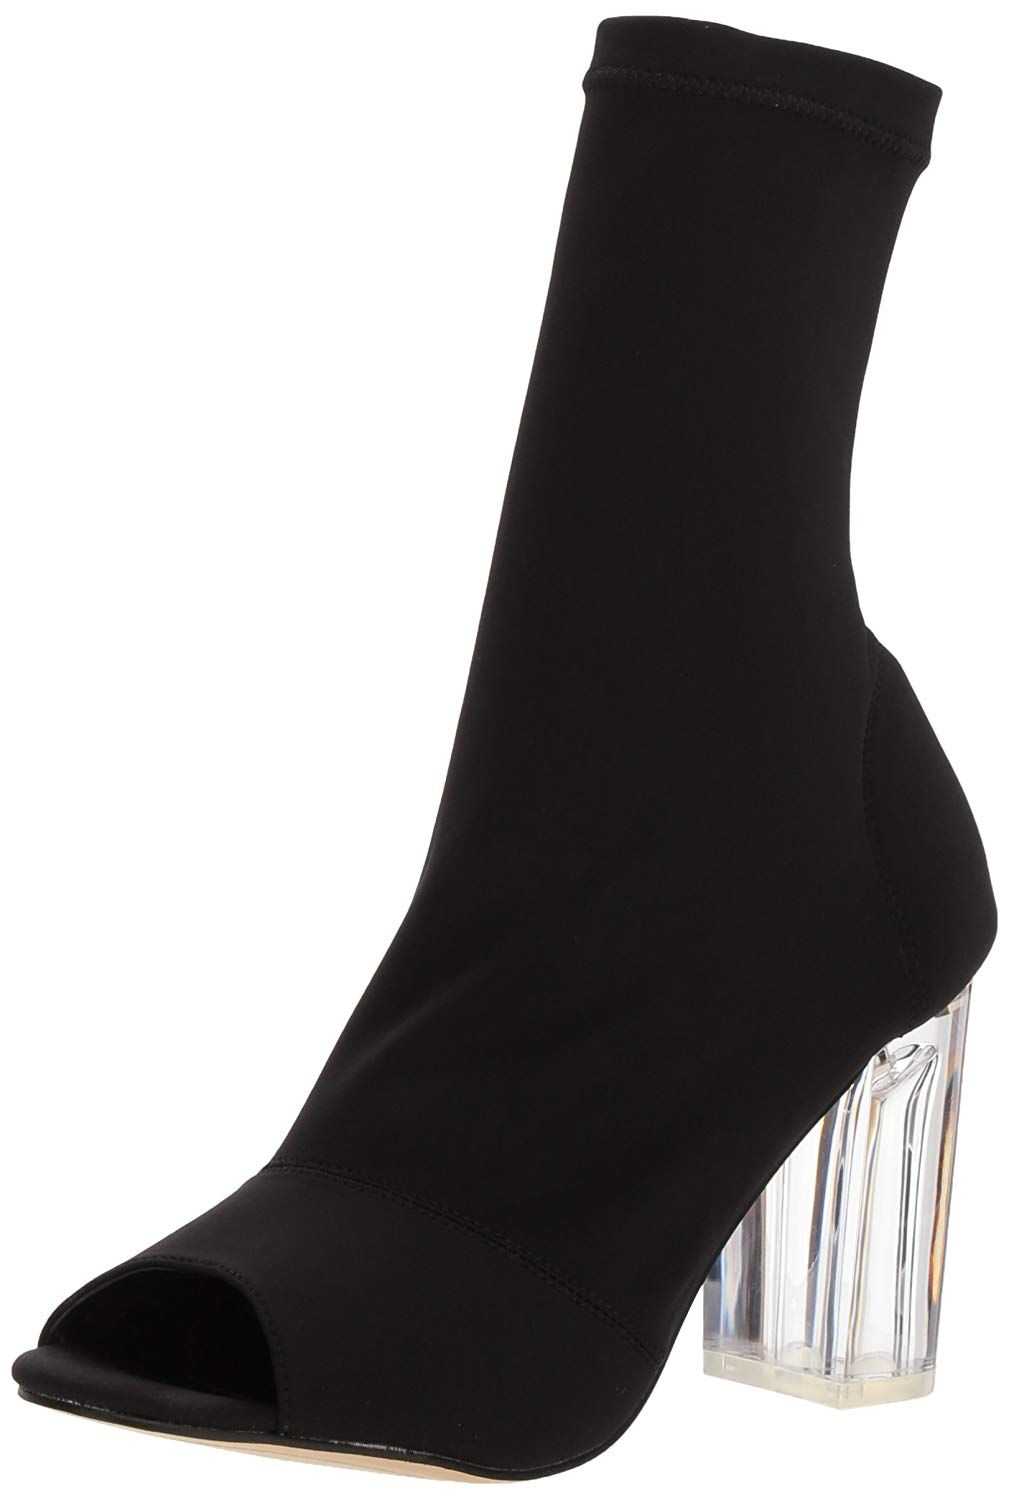 8c9fcac46d66 2 Lips Too Women s Too Crystal Fashion Boot. Every outfit will come alive  when you wear these stretch fitted ankle booties. Women s Shoes